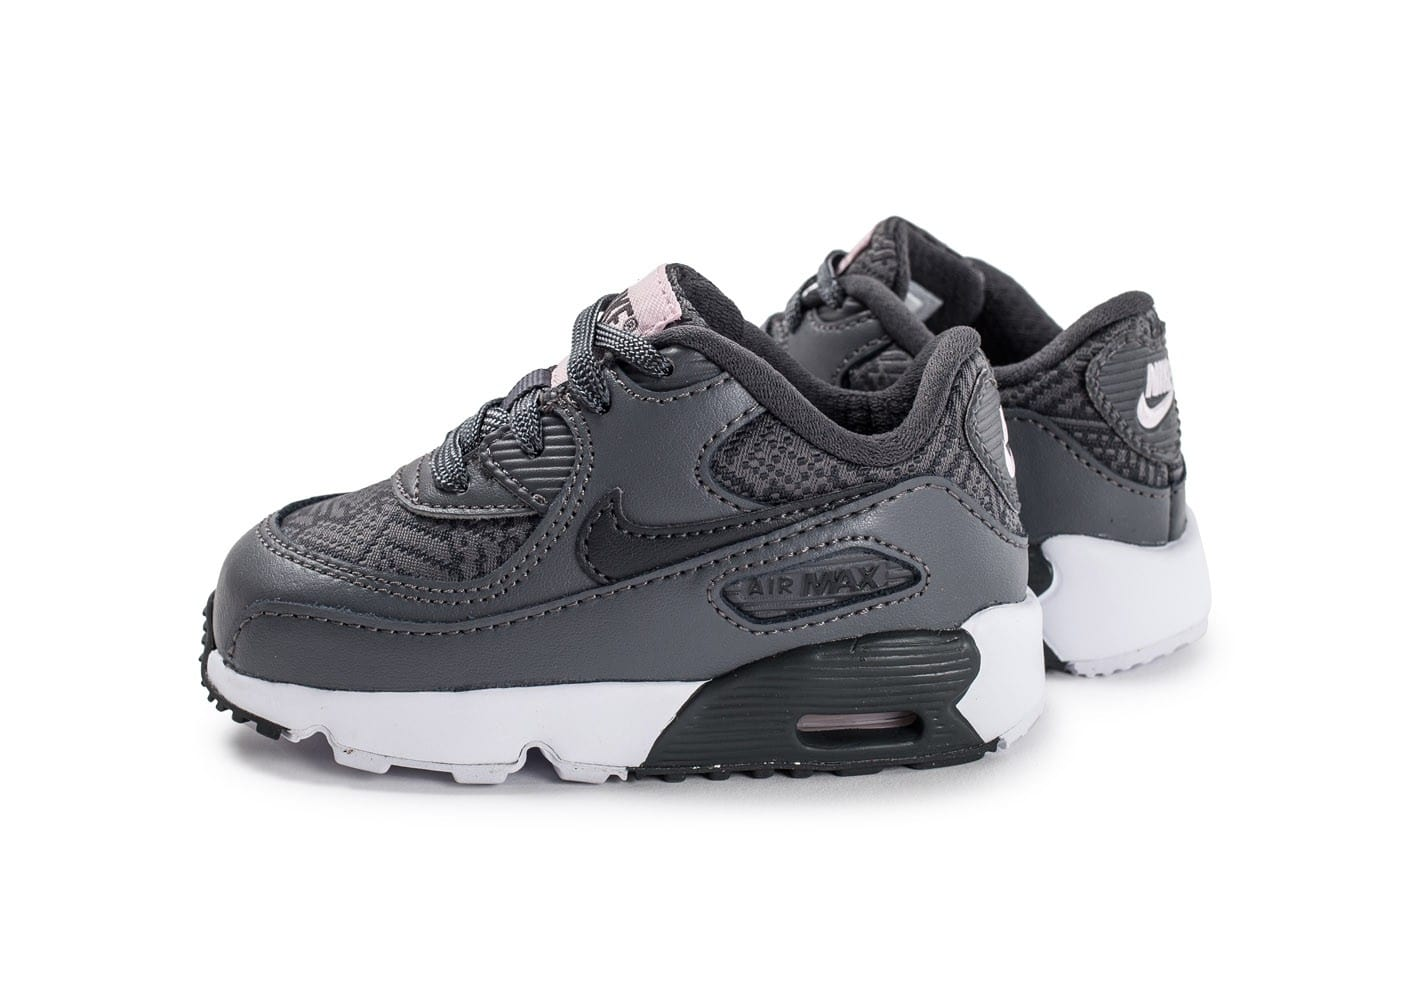 check out 2dfb8 62bfd Nike Ete Bebe Chaussure Ete Bebe Garcon Nike